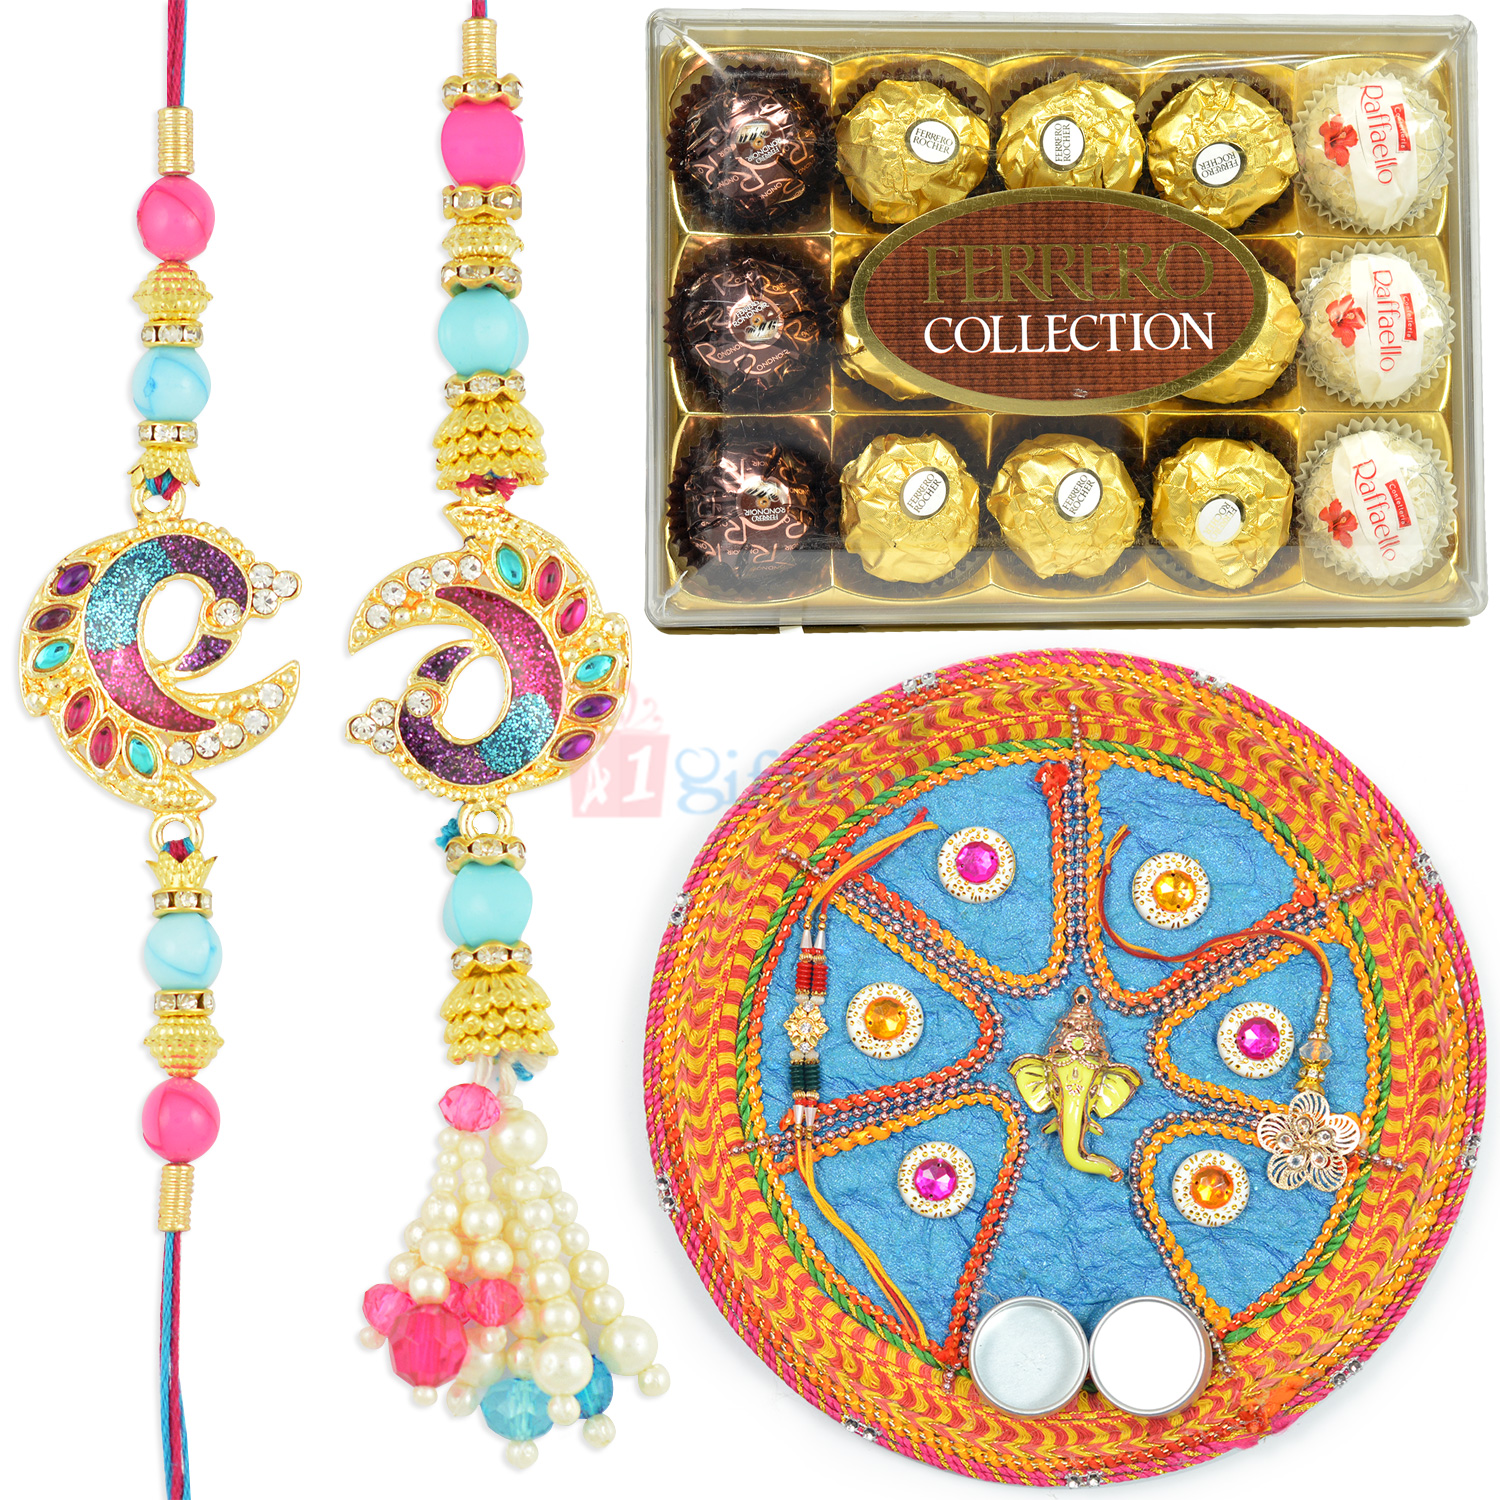 Peacock Pair Rakhi with T15 Ferrero and Mauli Rakhi Pooja Thali